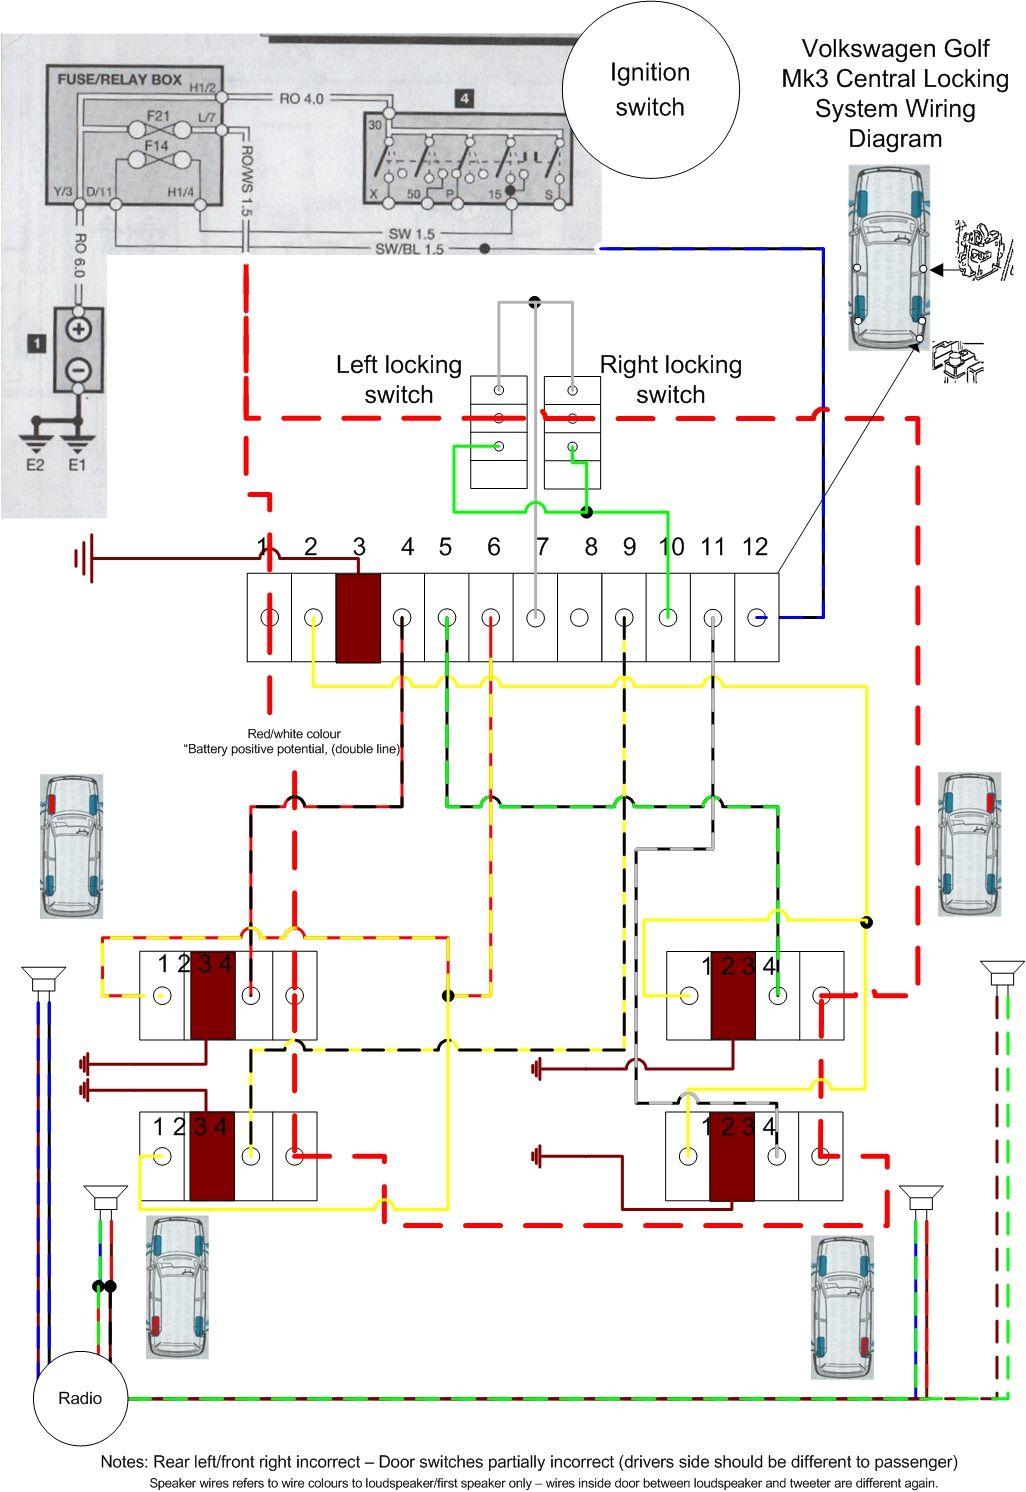 Vw Ignition Switch Wiring Diagram Vw up, Diagram